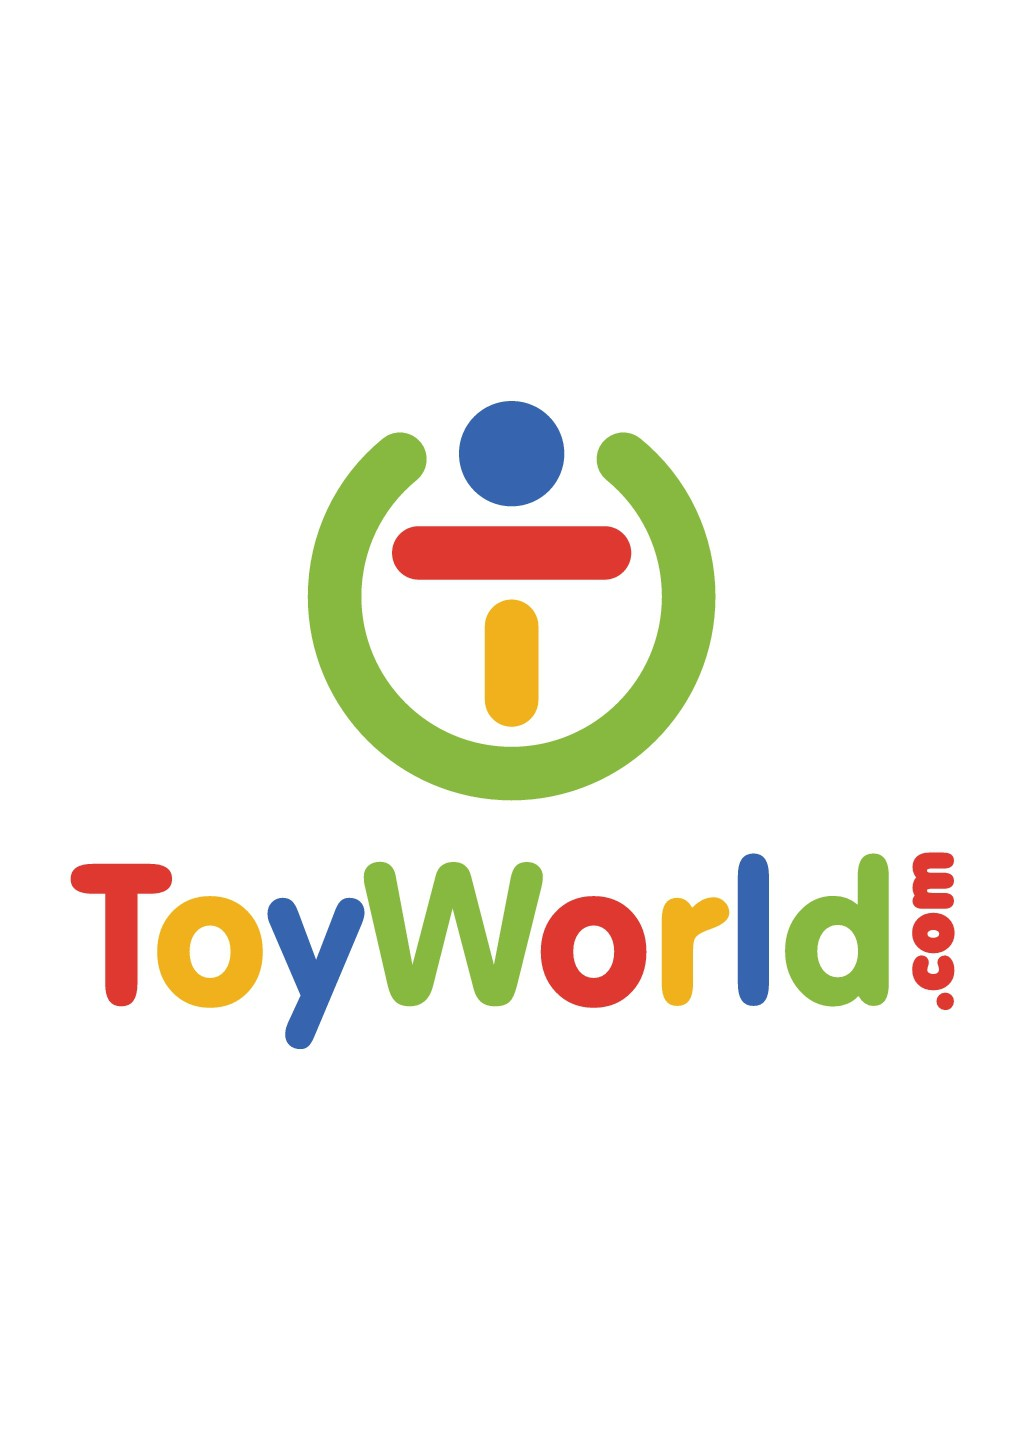 ToyWorld.com the largest Toy Marketplace needs a great logo. Think the Uber, the ebay or airbnb of toys